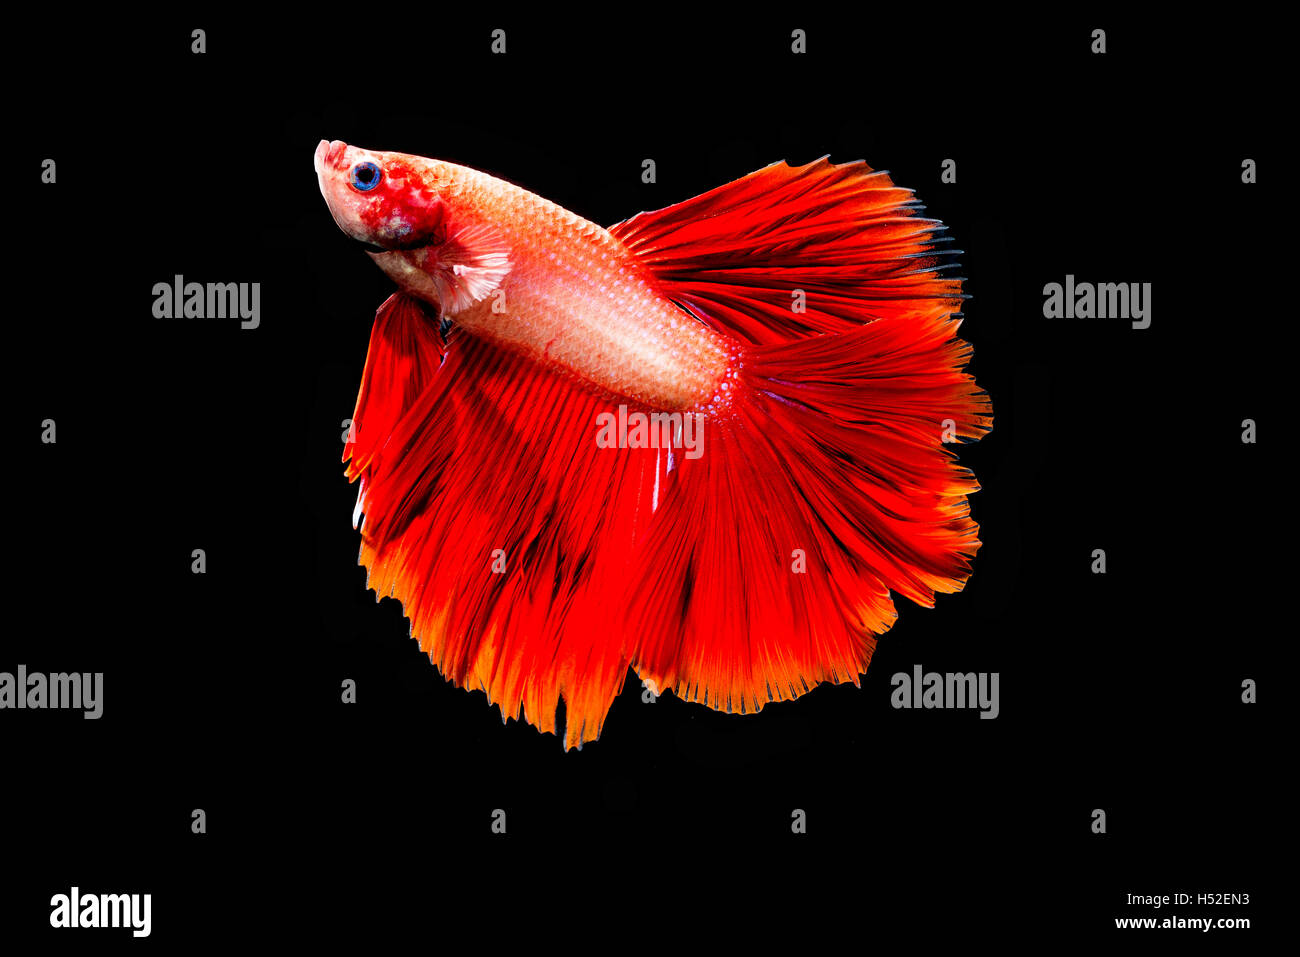 Red Betta Fish isolated black background Stock Photo